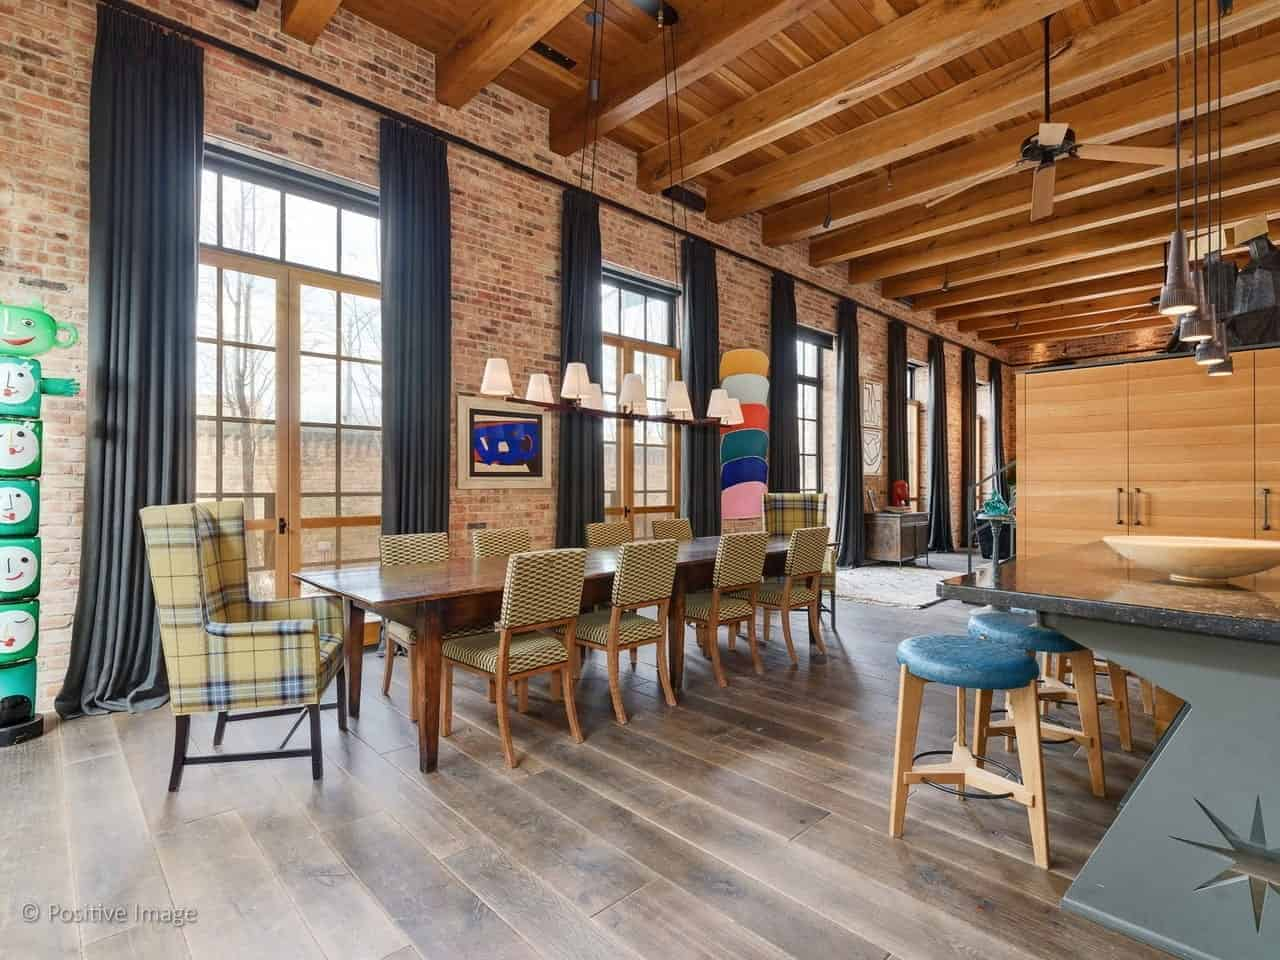 This industrial-style dining room beside the kitchen has a high wooden ceiling with exposed wooden beams. This is augmented by tall brick walls with tall glass windows that has dark gray curtains. These windows brighten up the wooden table that stands out against the distressed hardwood flooring.